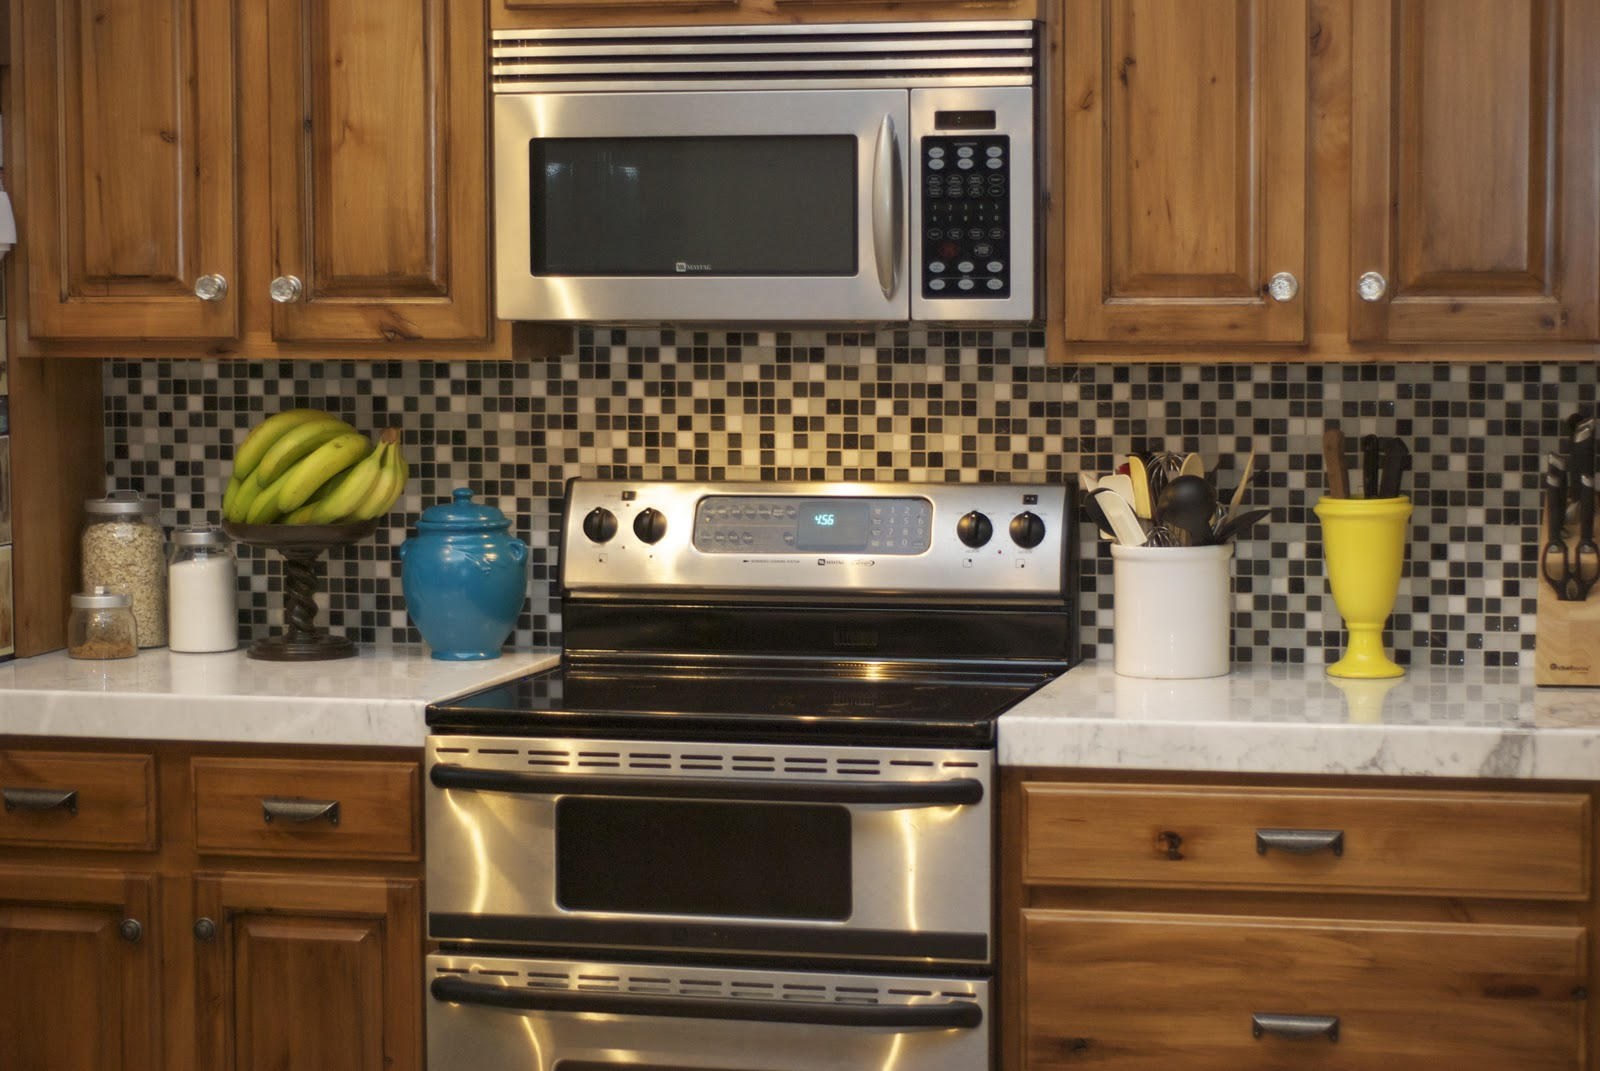 The astounding Grey subway tile backsplash kitchen digital imagery